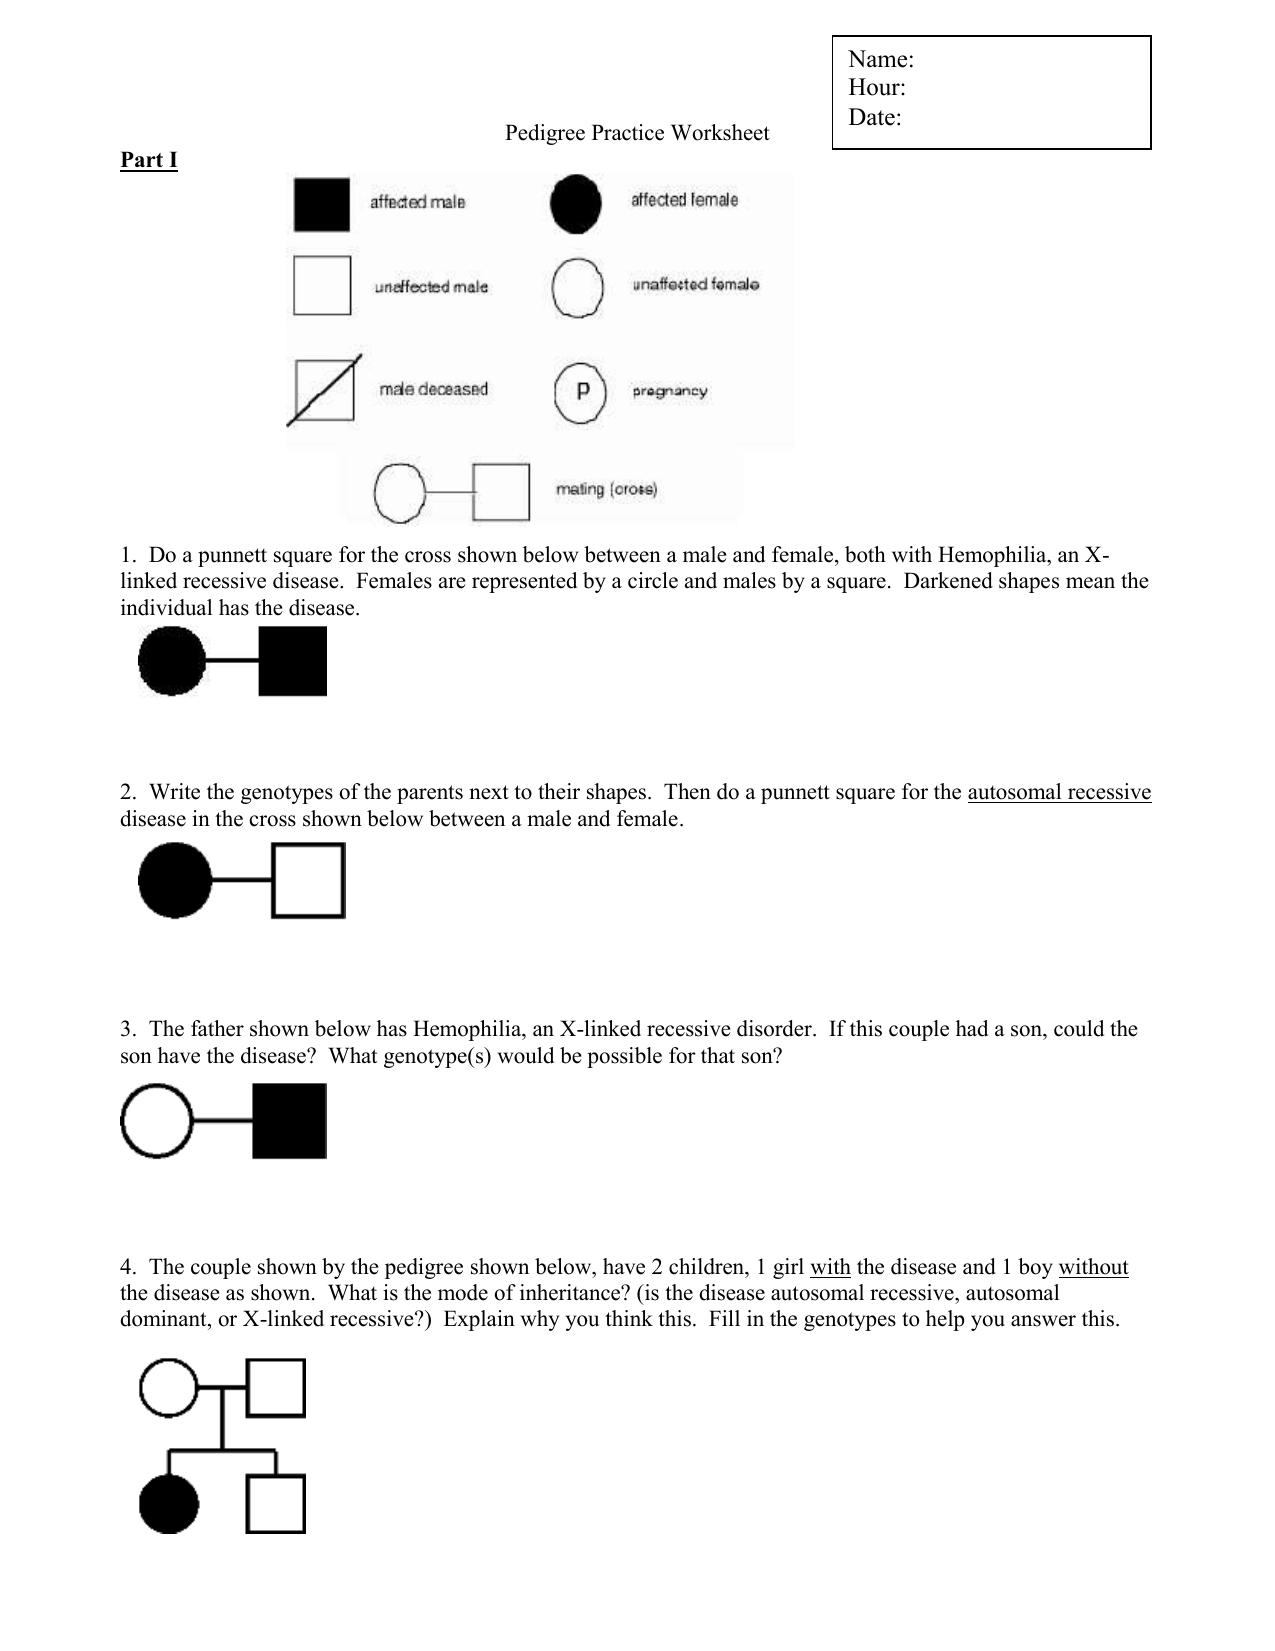 Printables Of Pedigree Practice Worksheets With Answers